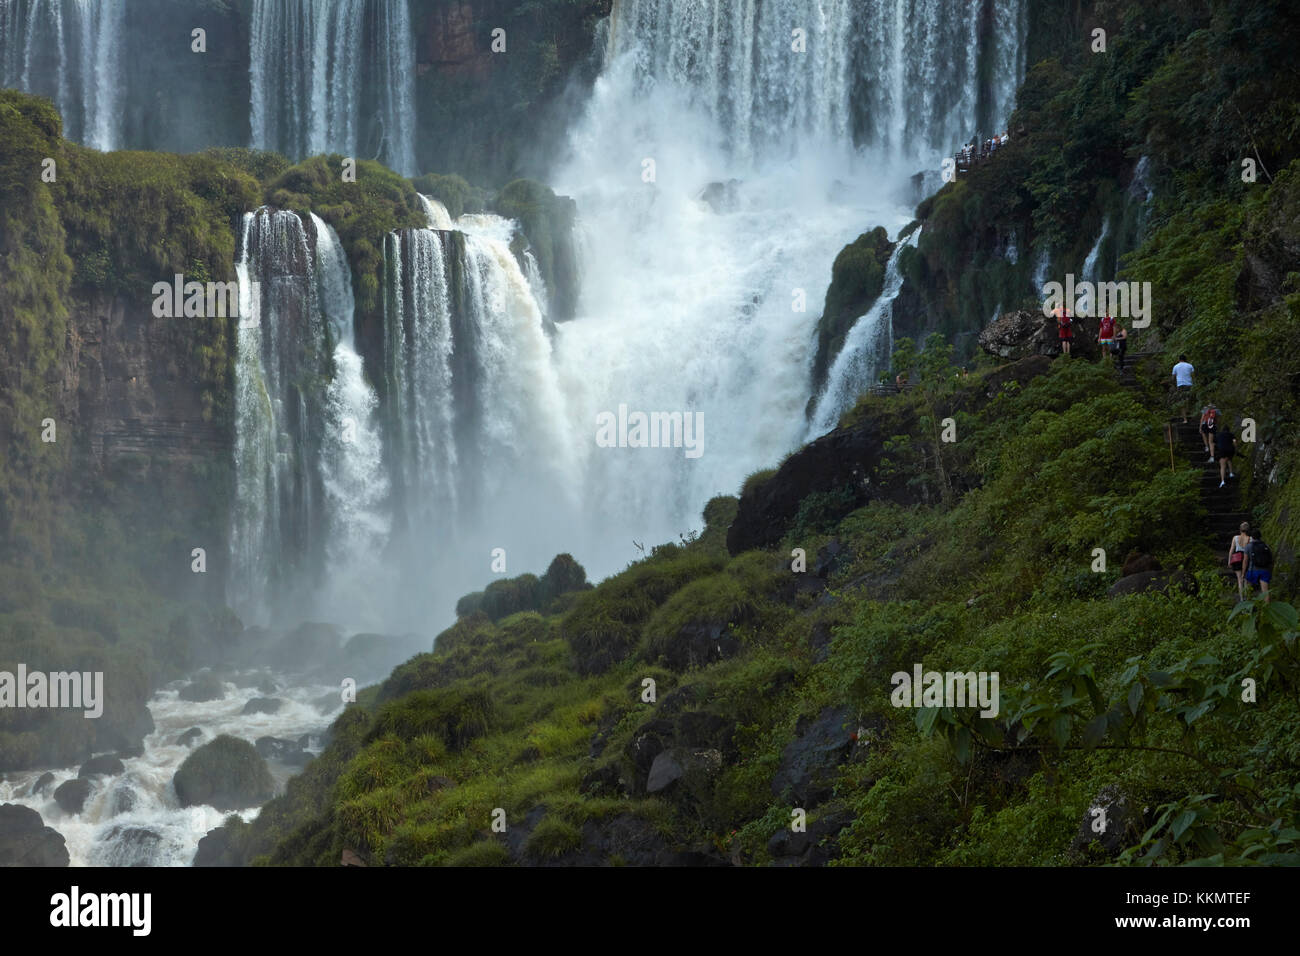 Tourists on track by Iguazu Falls, Argentina, South America - Stock Image